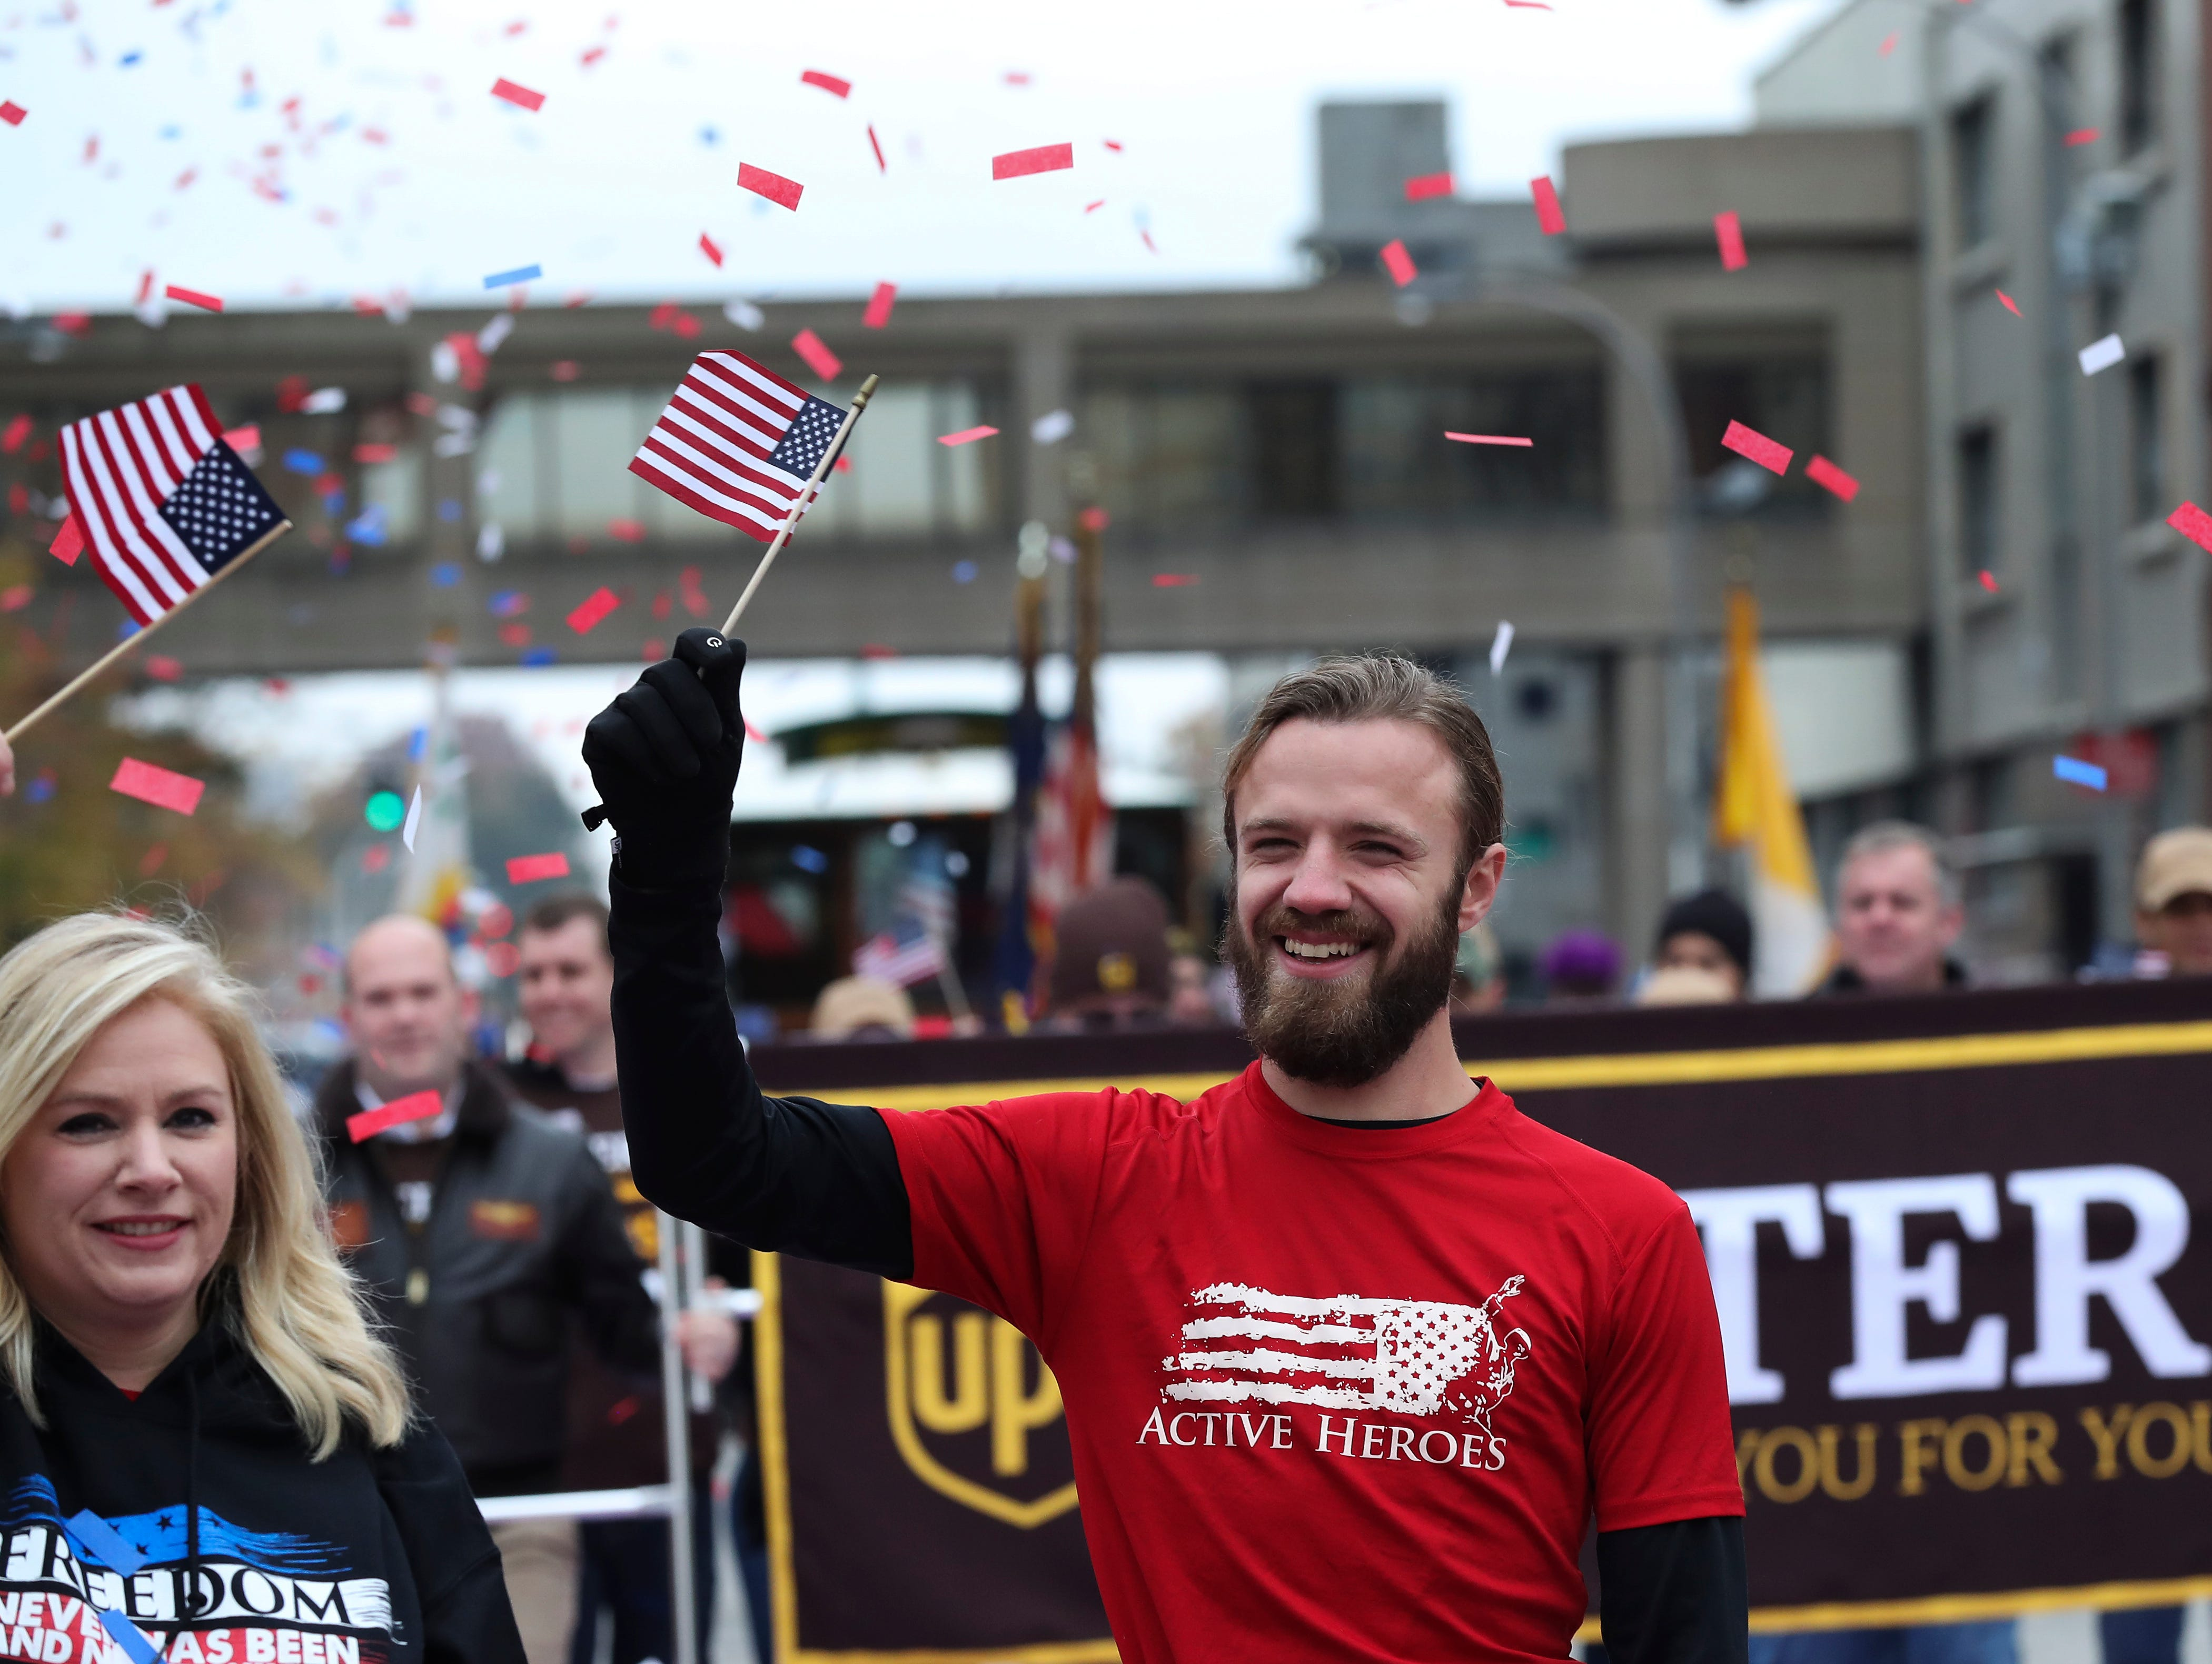 Jeremy Sneed, of Active Heroes, marched down Jefferson Street during the Veterans Day Parade.  Active Heroes highlights military suicide and prevention.Nov. 9, 2018